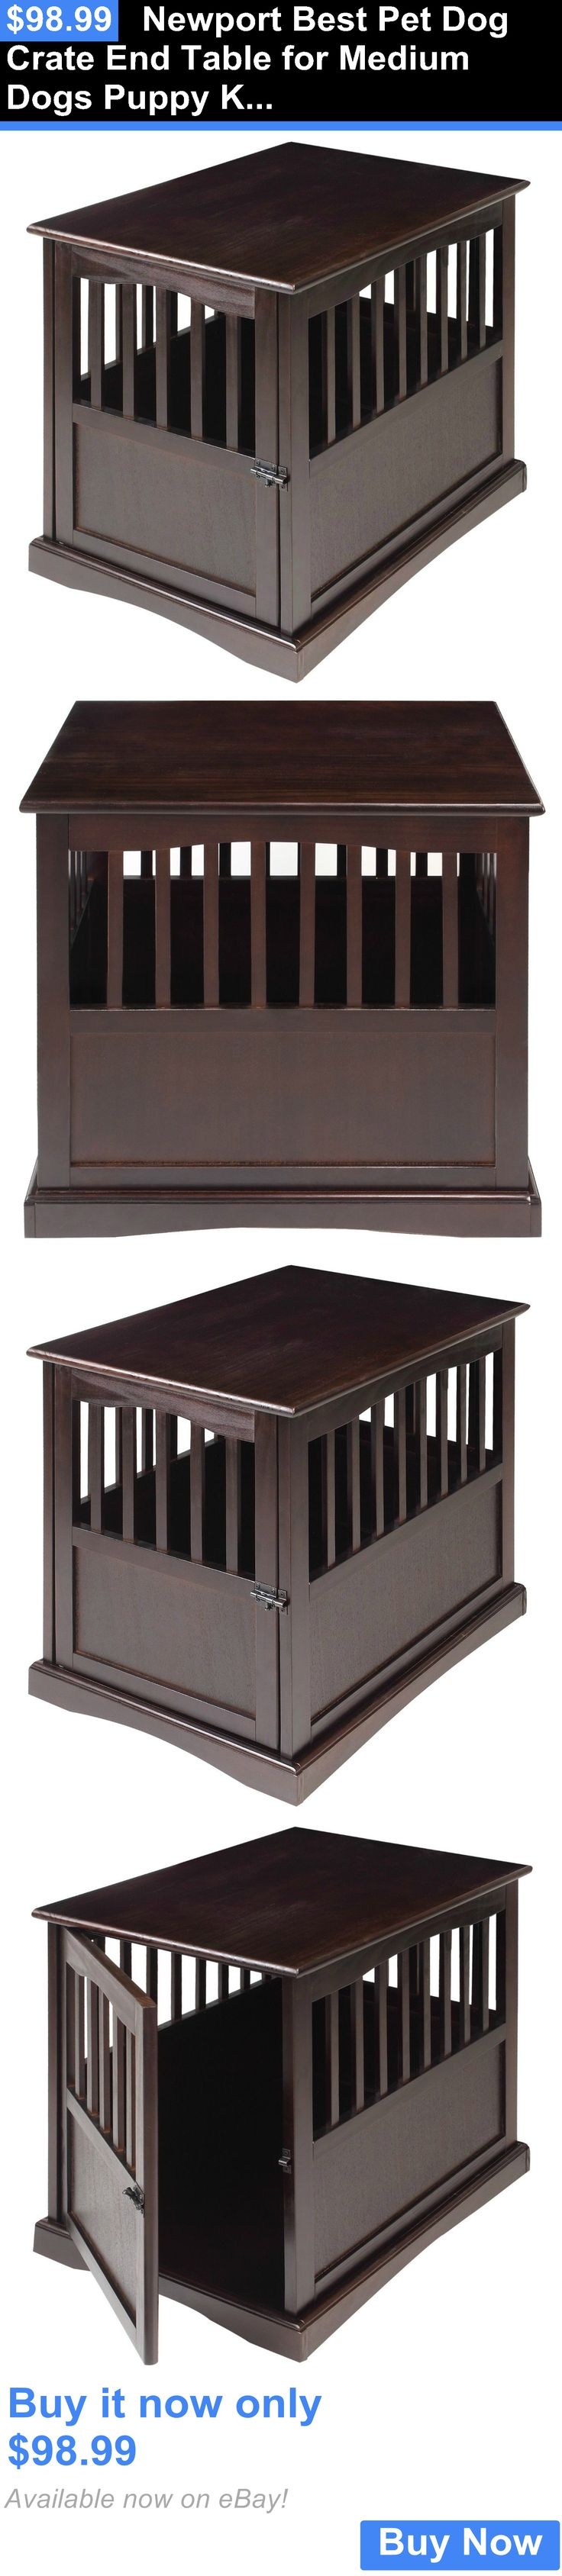 Animals Dog: Newport Best Pet Dog Crate End Table For Medium Dogs Puppy Kennel Cage Wood BUY IT NOW ONLY: $98.99